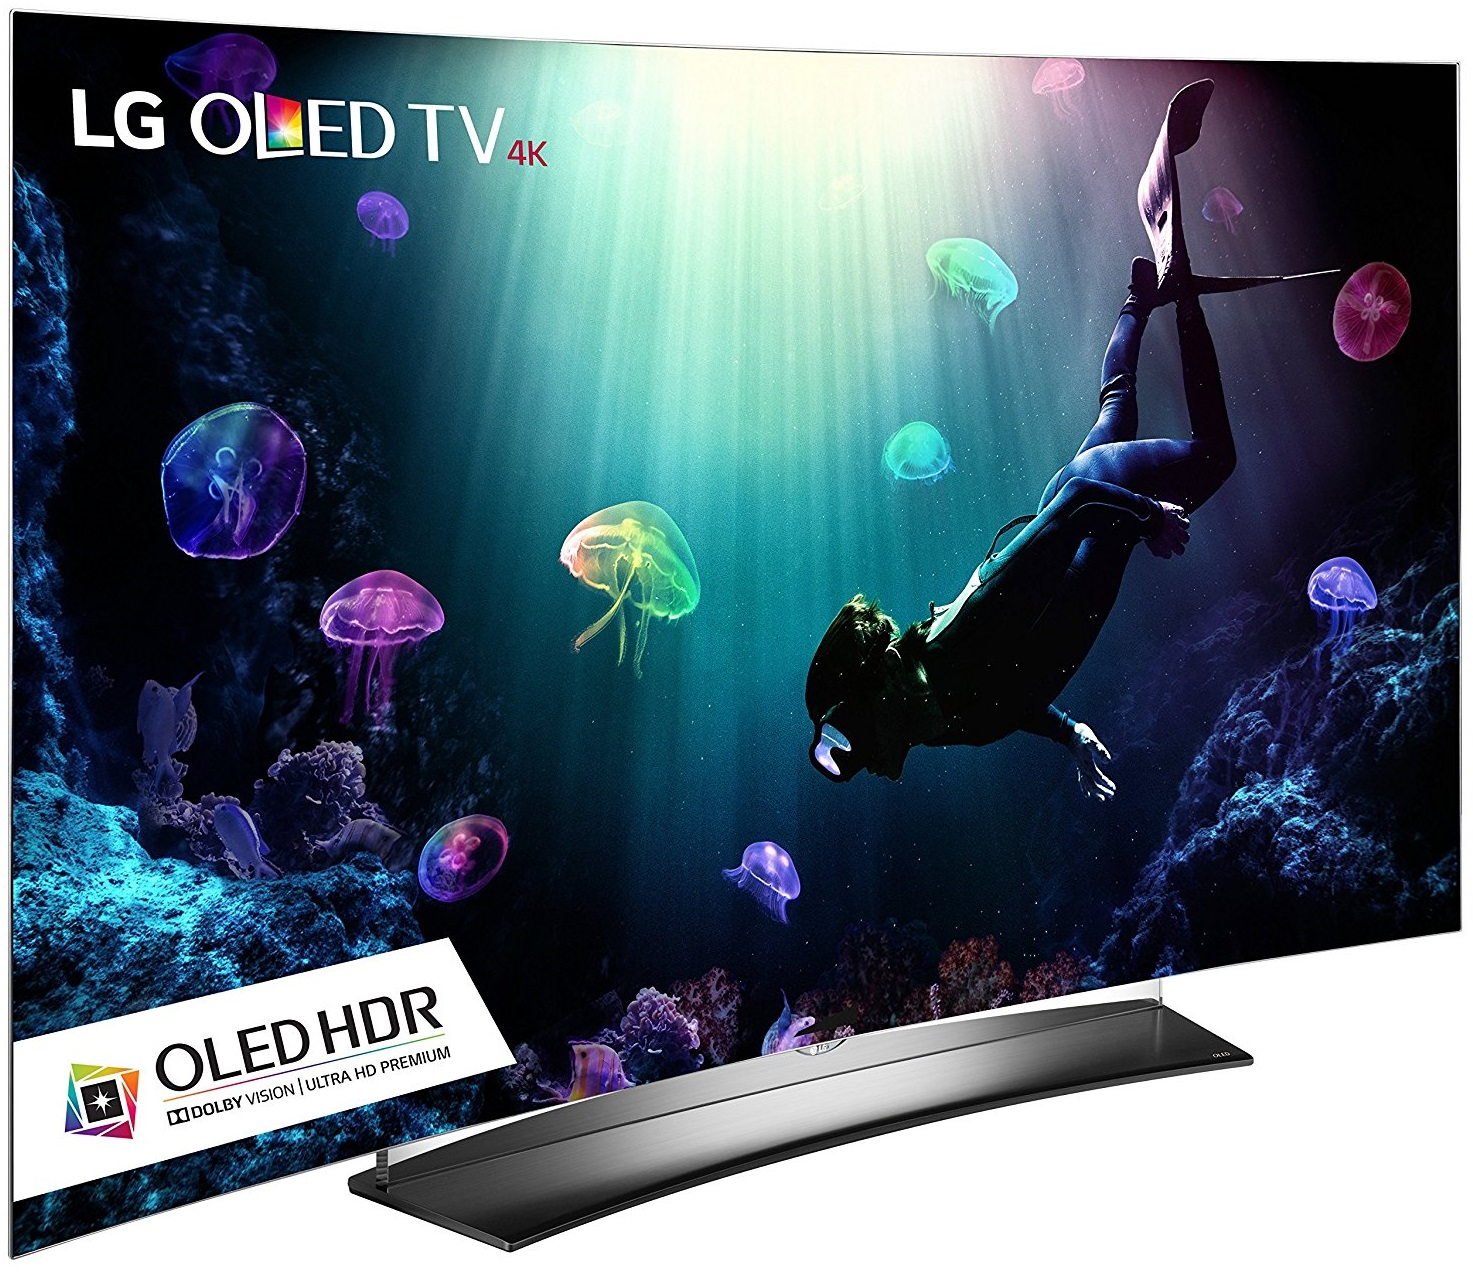 lg oled65c7p vs oled65c6p what 39 s the key improvement in lg oled65c7p tv comparison. Black Bedroom Furniture Sets. Home Design Ideas